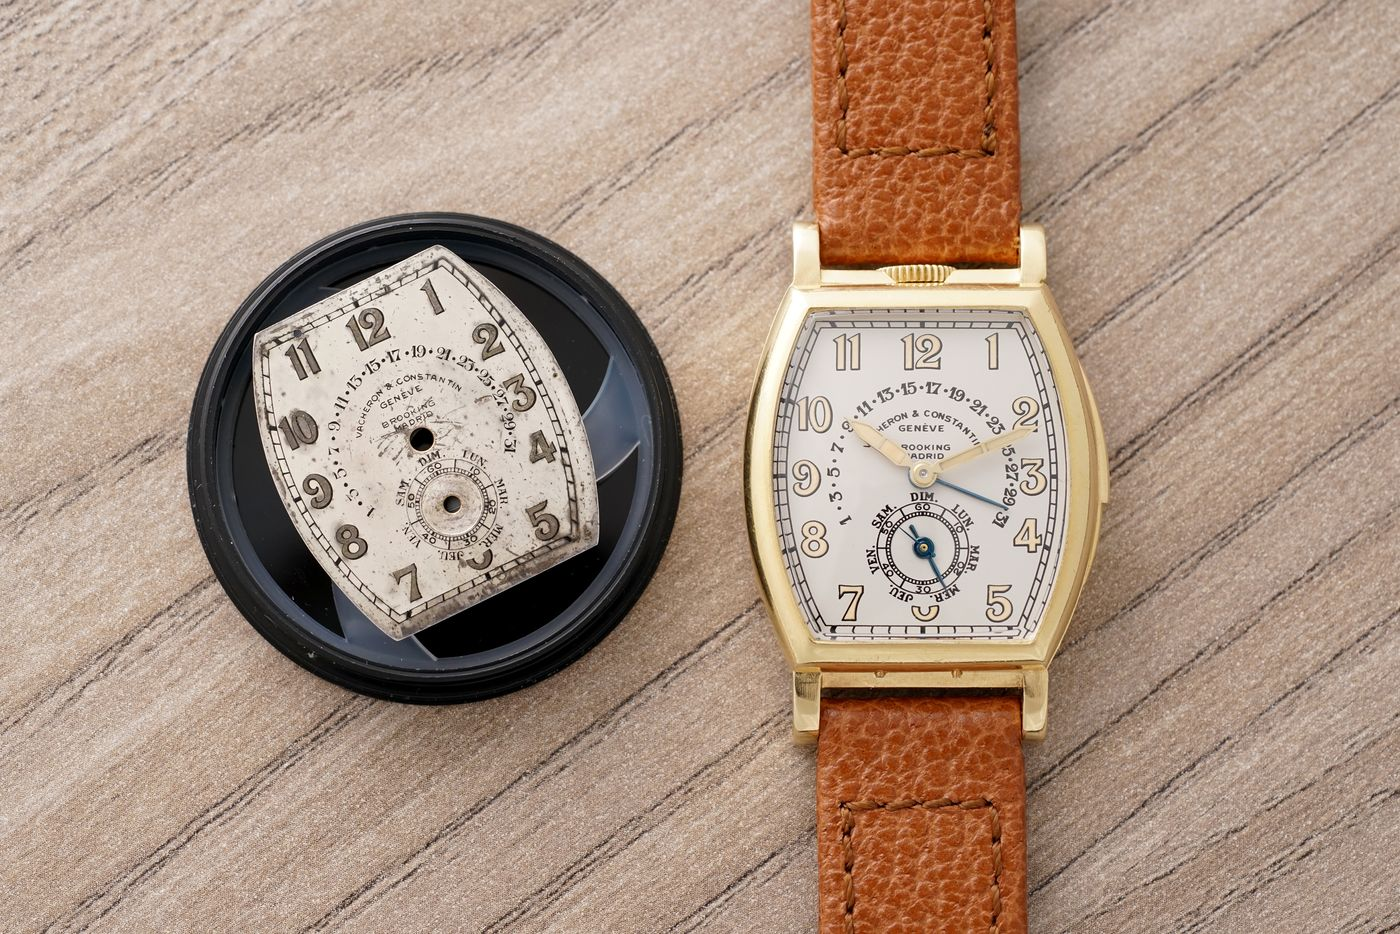 This May, Phillips will sell what many consider to be the most important wristwatch ever made by Vacheron Constantin, putting an end to a 27-year-long treasure hunt.